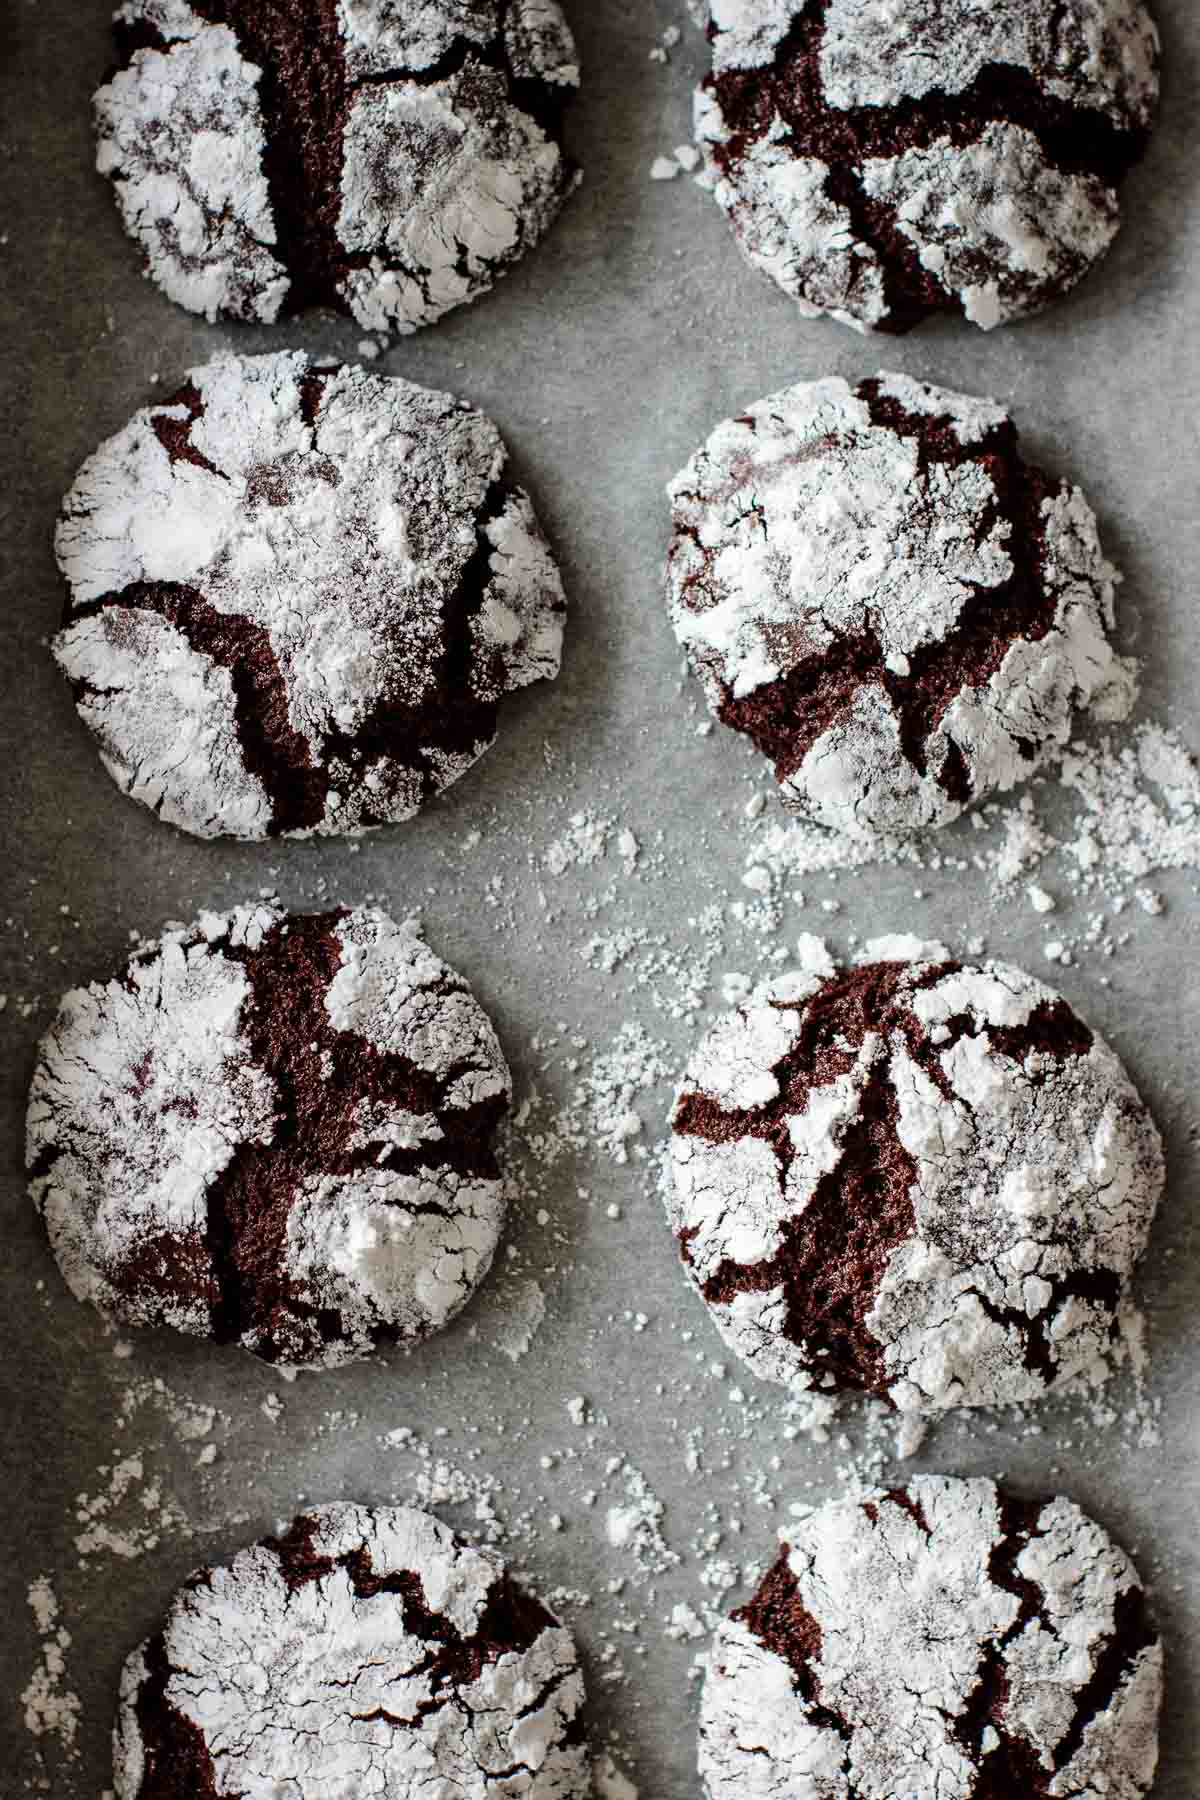 a baking sheet full of chocolate crinkles